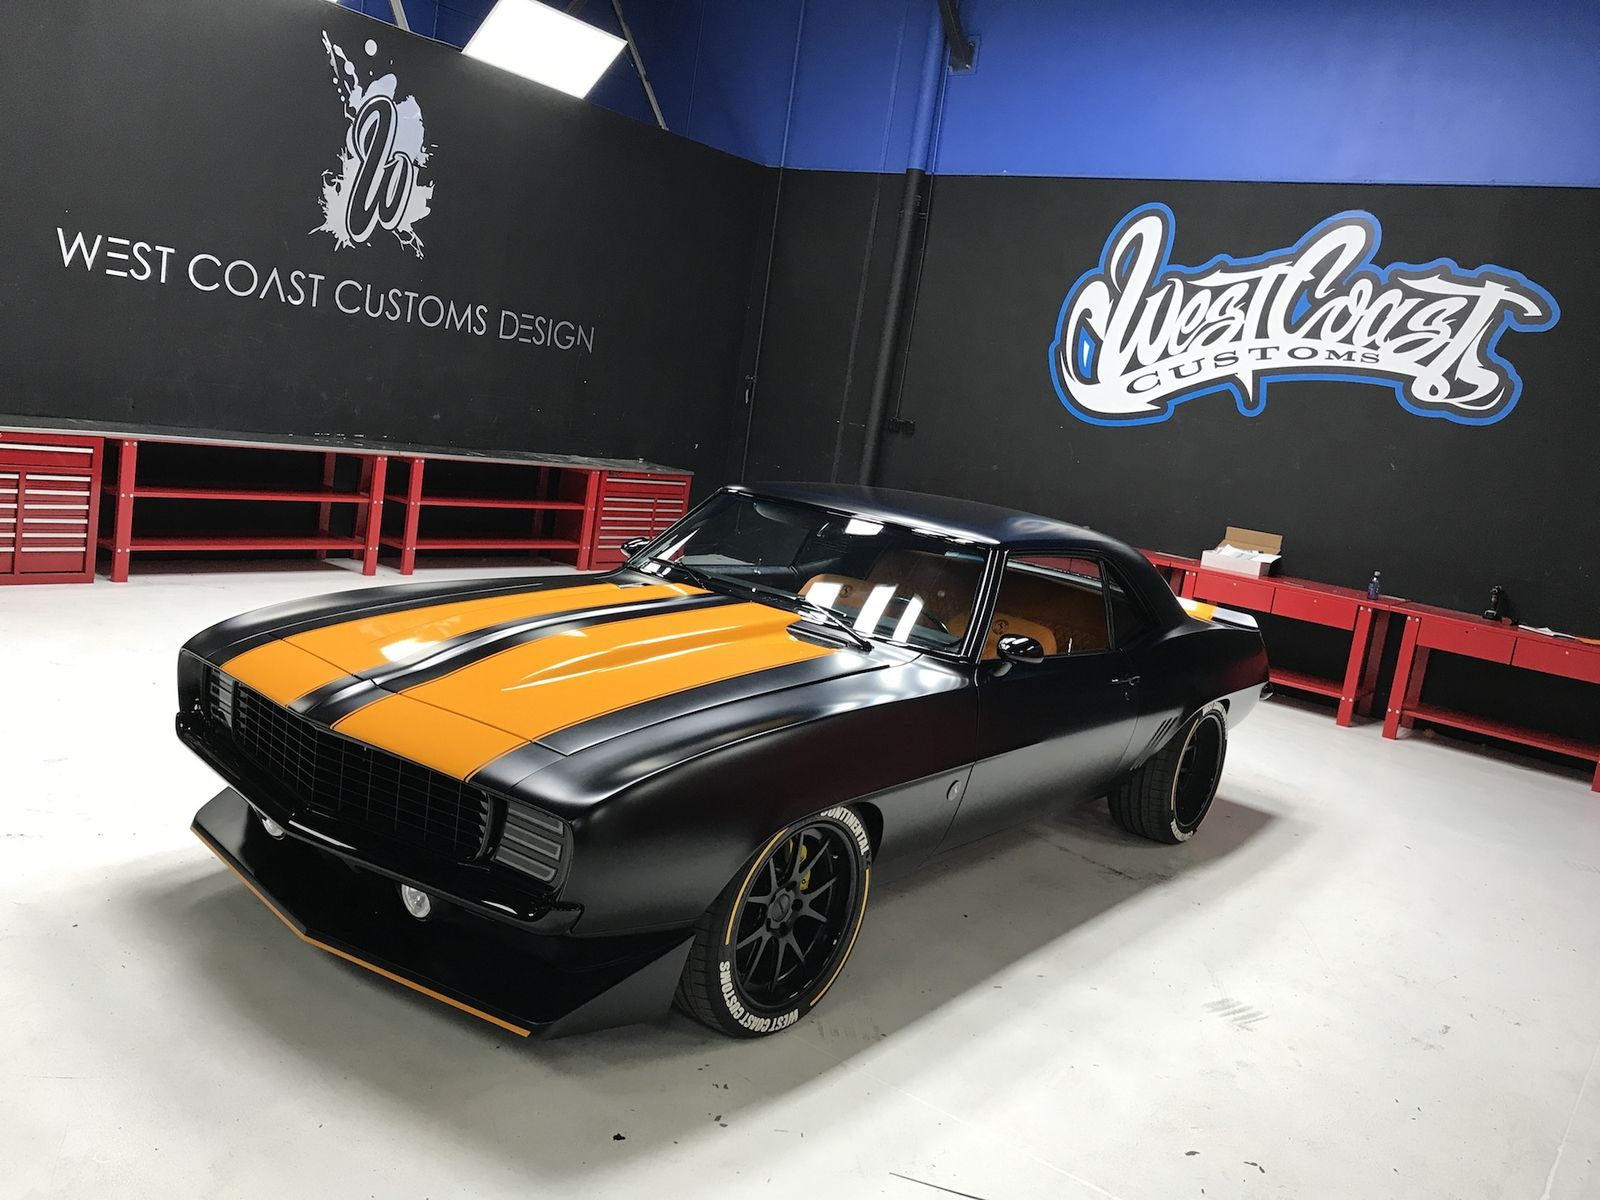 1969 Chevrolet Camaro | Continental Tire's West Coast Customs-Built '69 Camaro on Forgeline GA3C Wheels